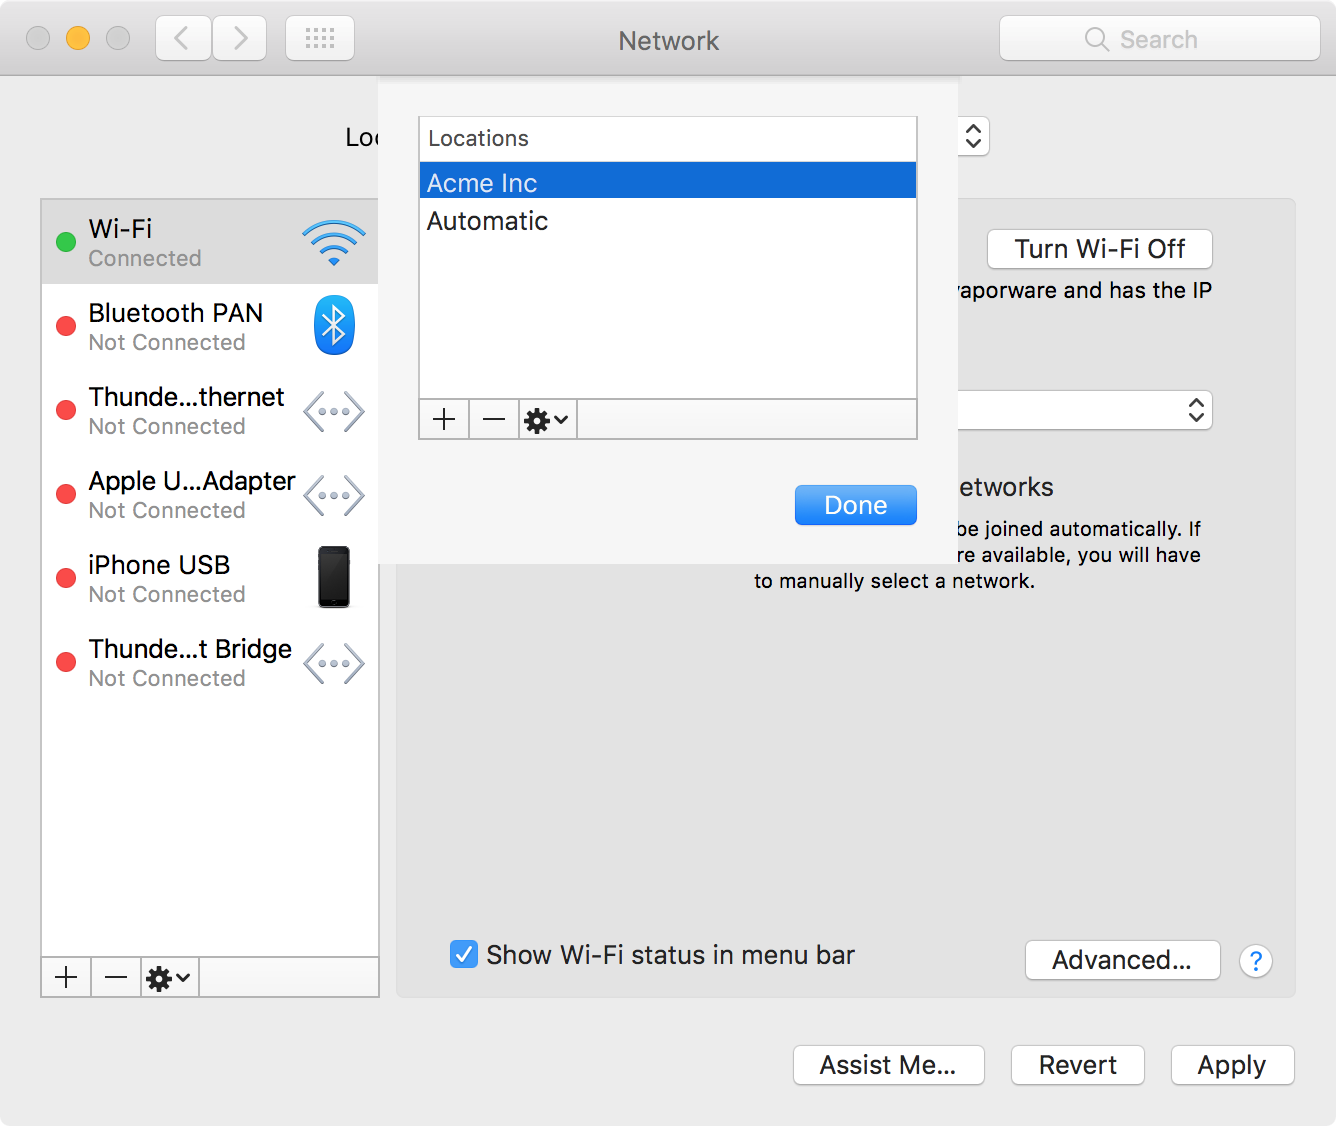 Automating network location switching on macOS - Data at